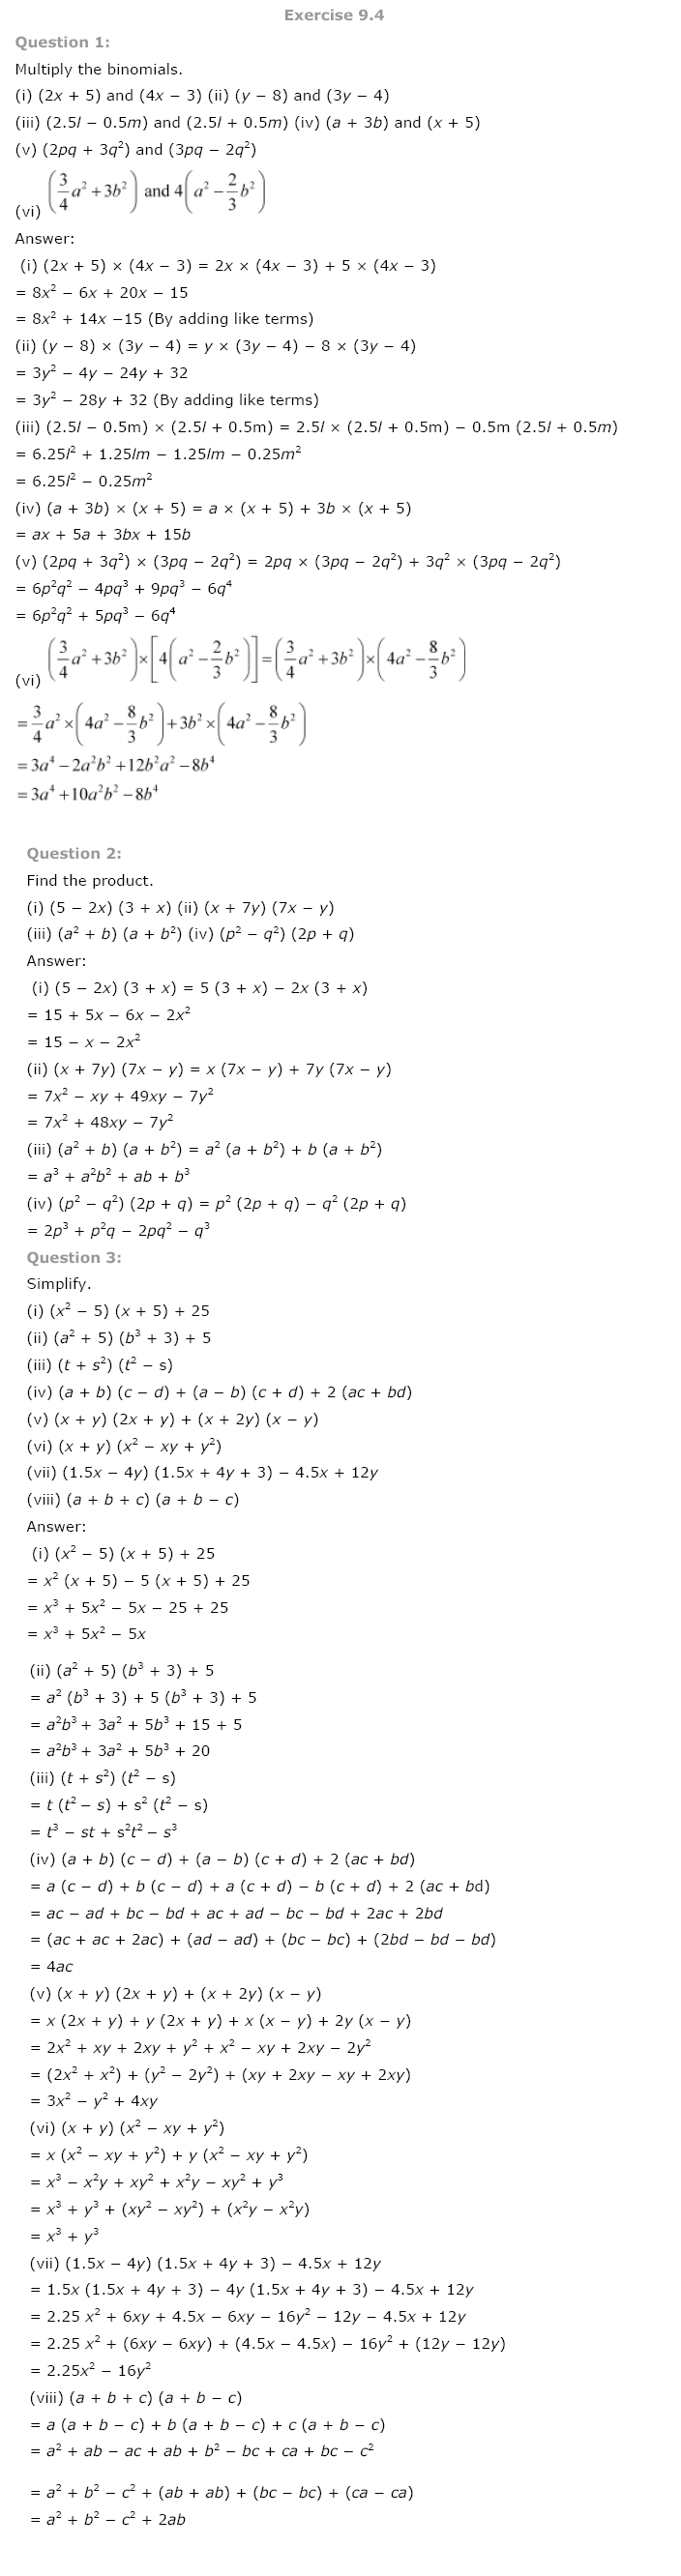 NCERT Solutions for Class 8th Maths Chapter 9 Algebraic Expressions and Identities Image by AglaSem